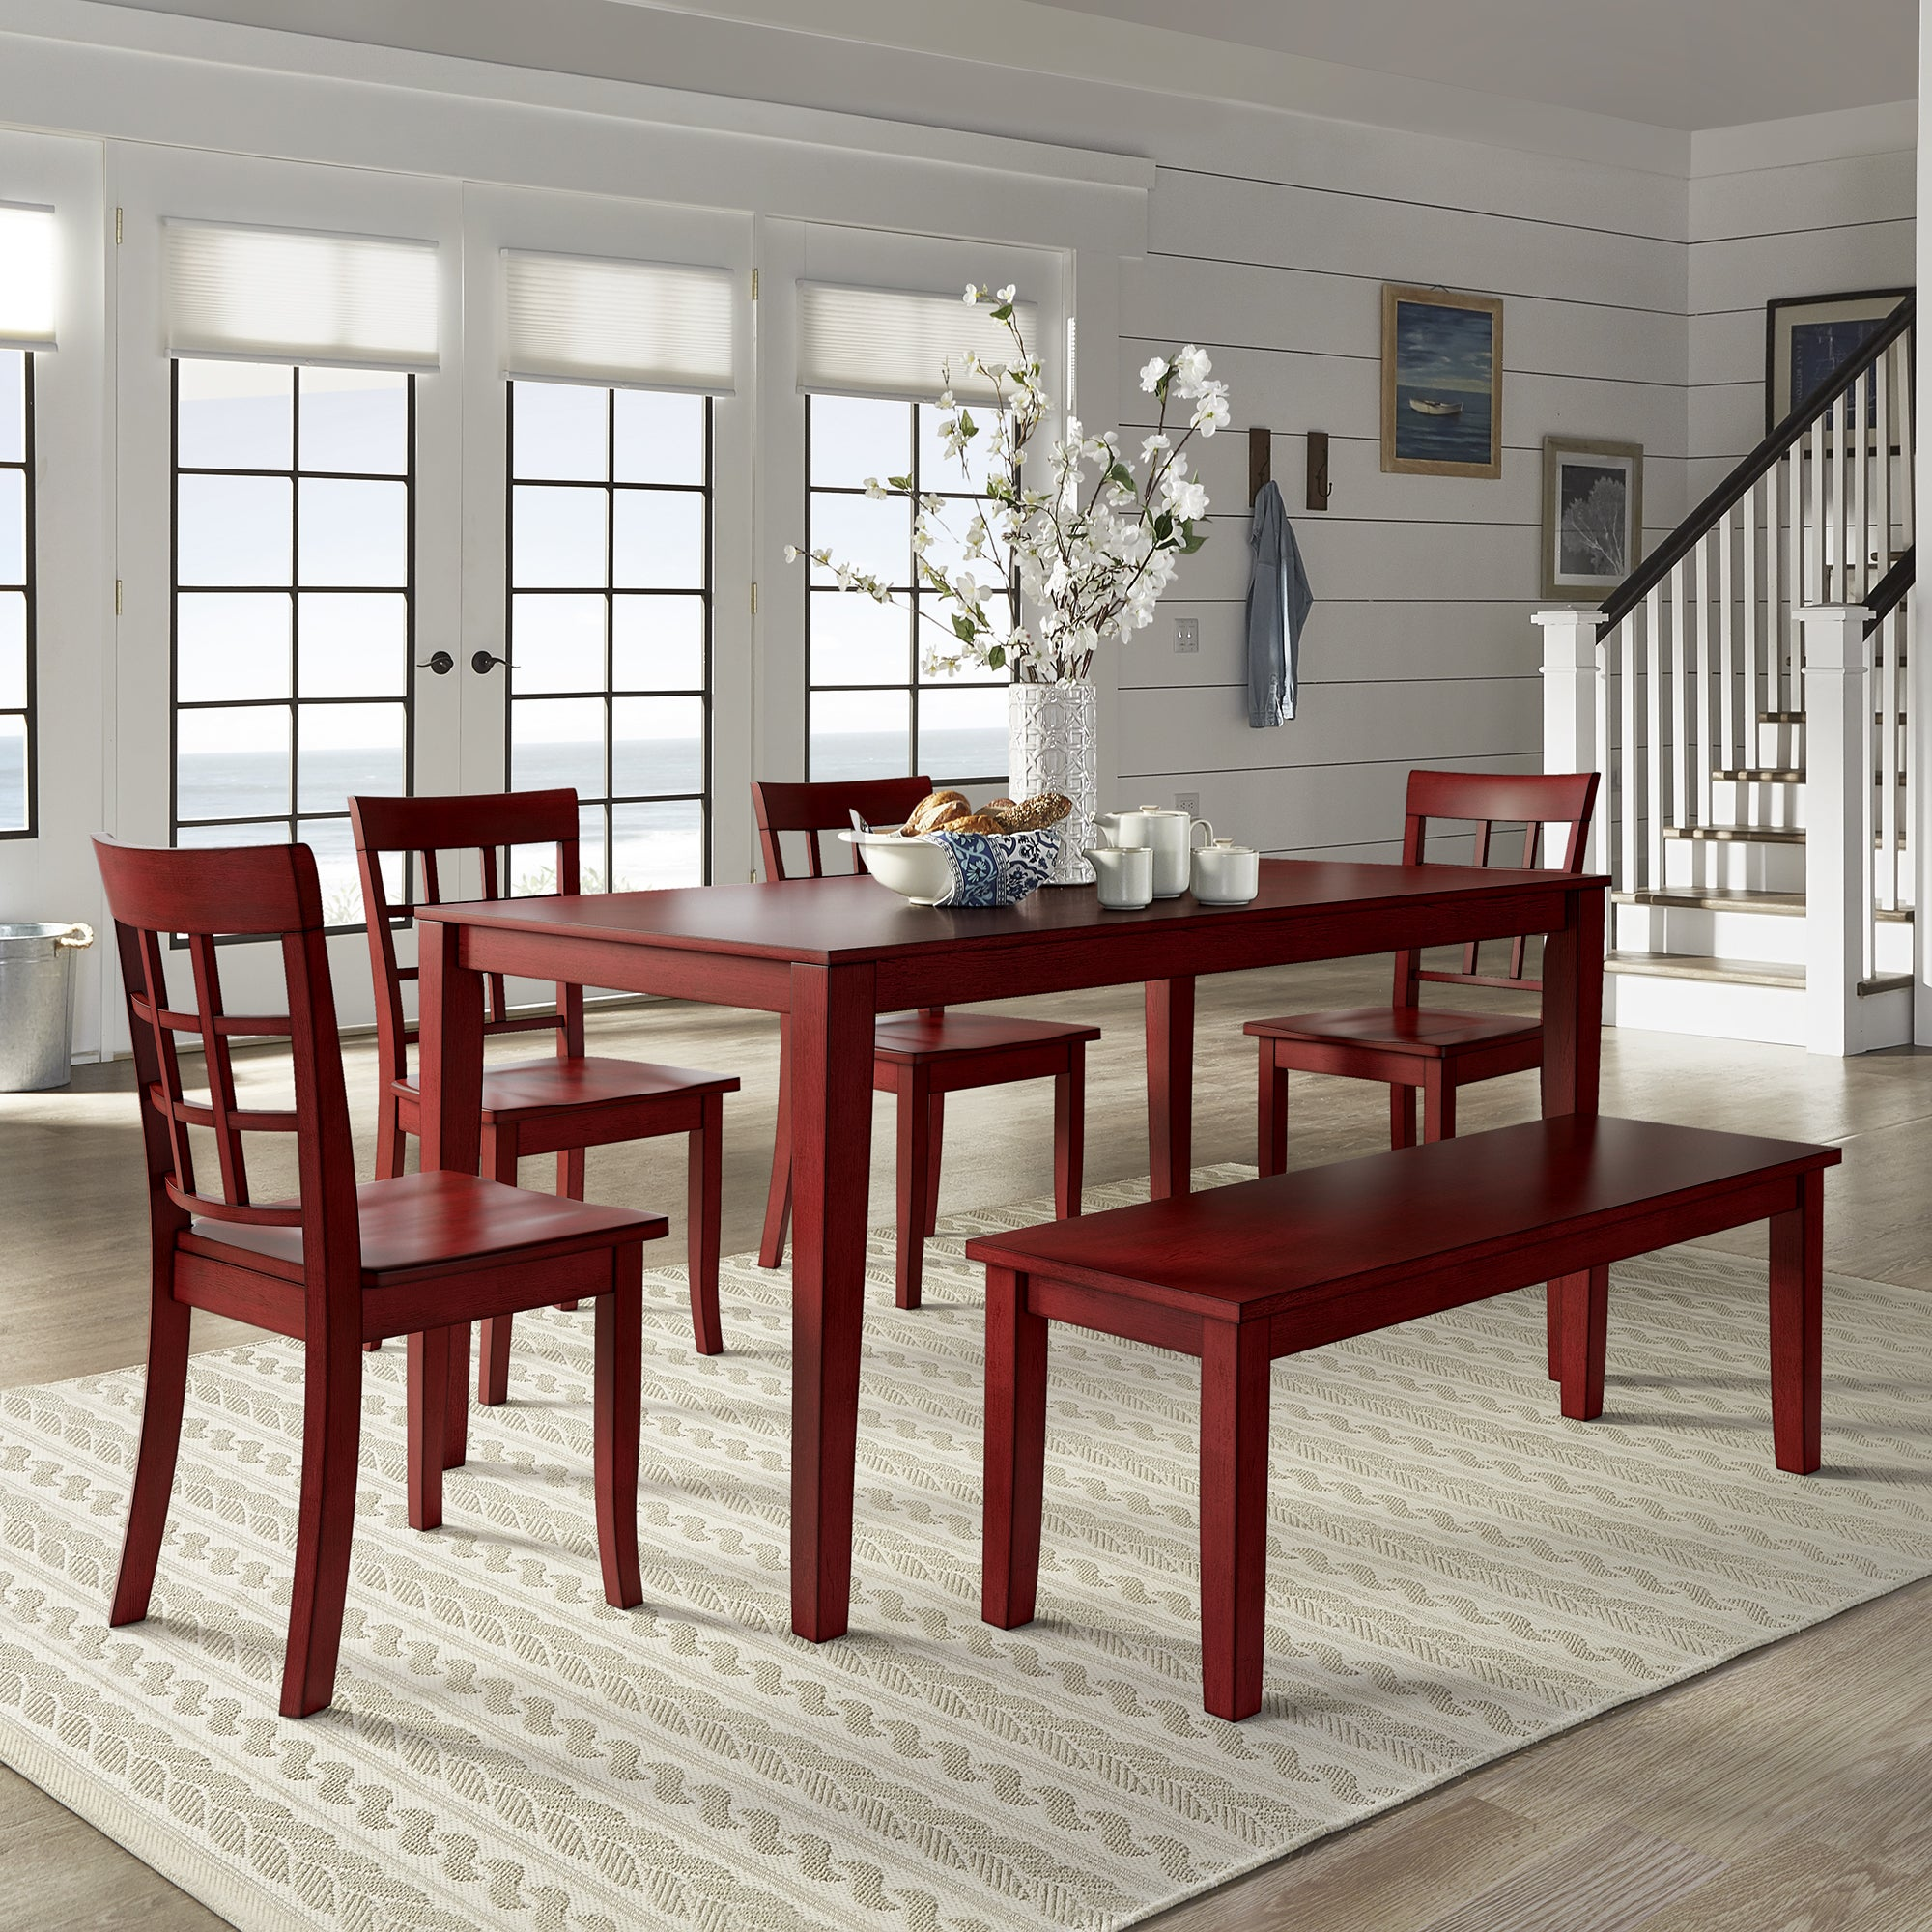 Attirant Wilmington II 60 Inch Rectangular Antique Berry Red Dining Set By INSPIRE Q